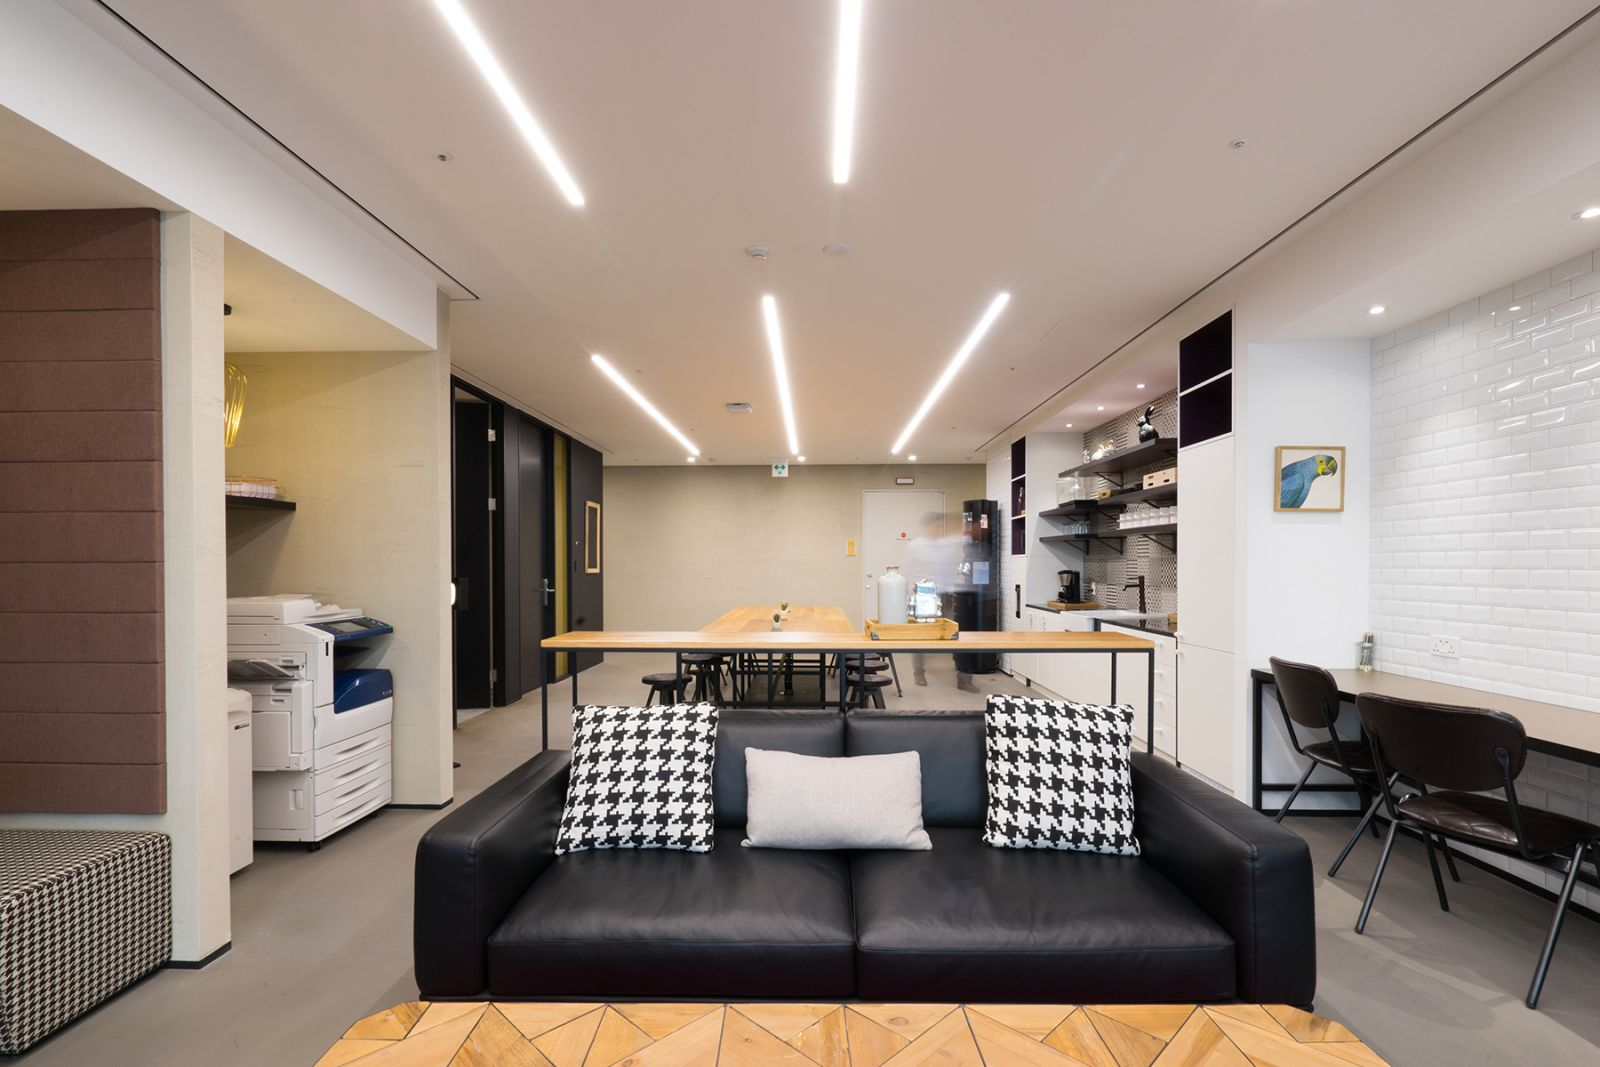 The Executive Center Coworking Space in Seoul